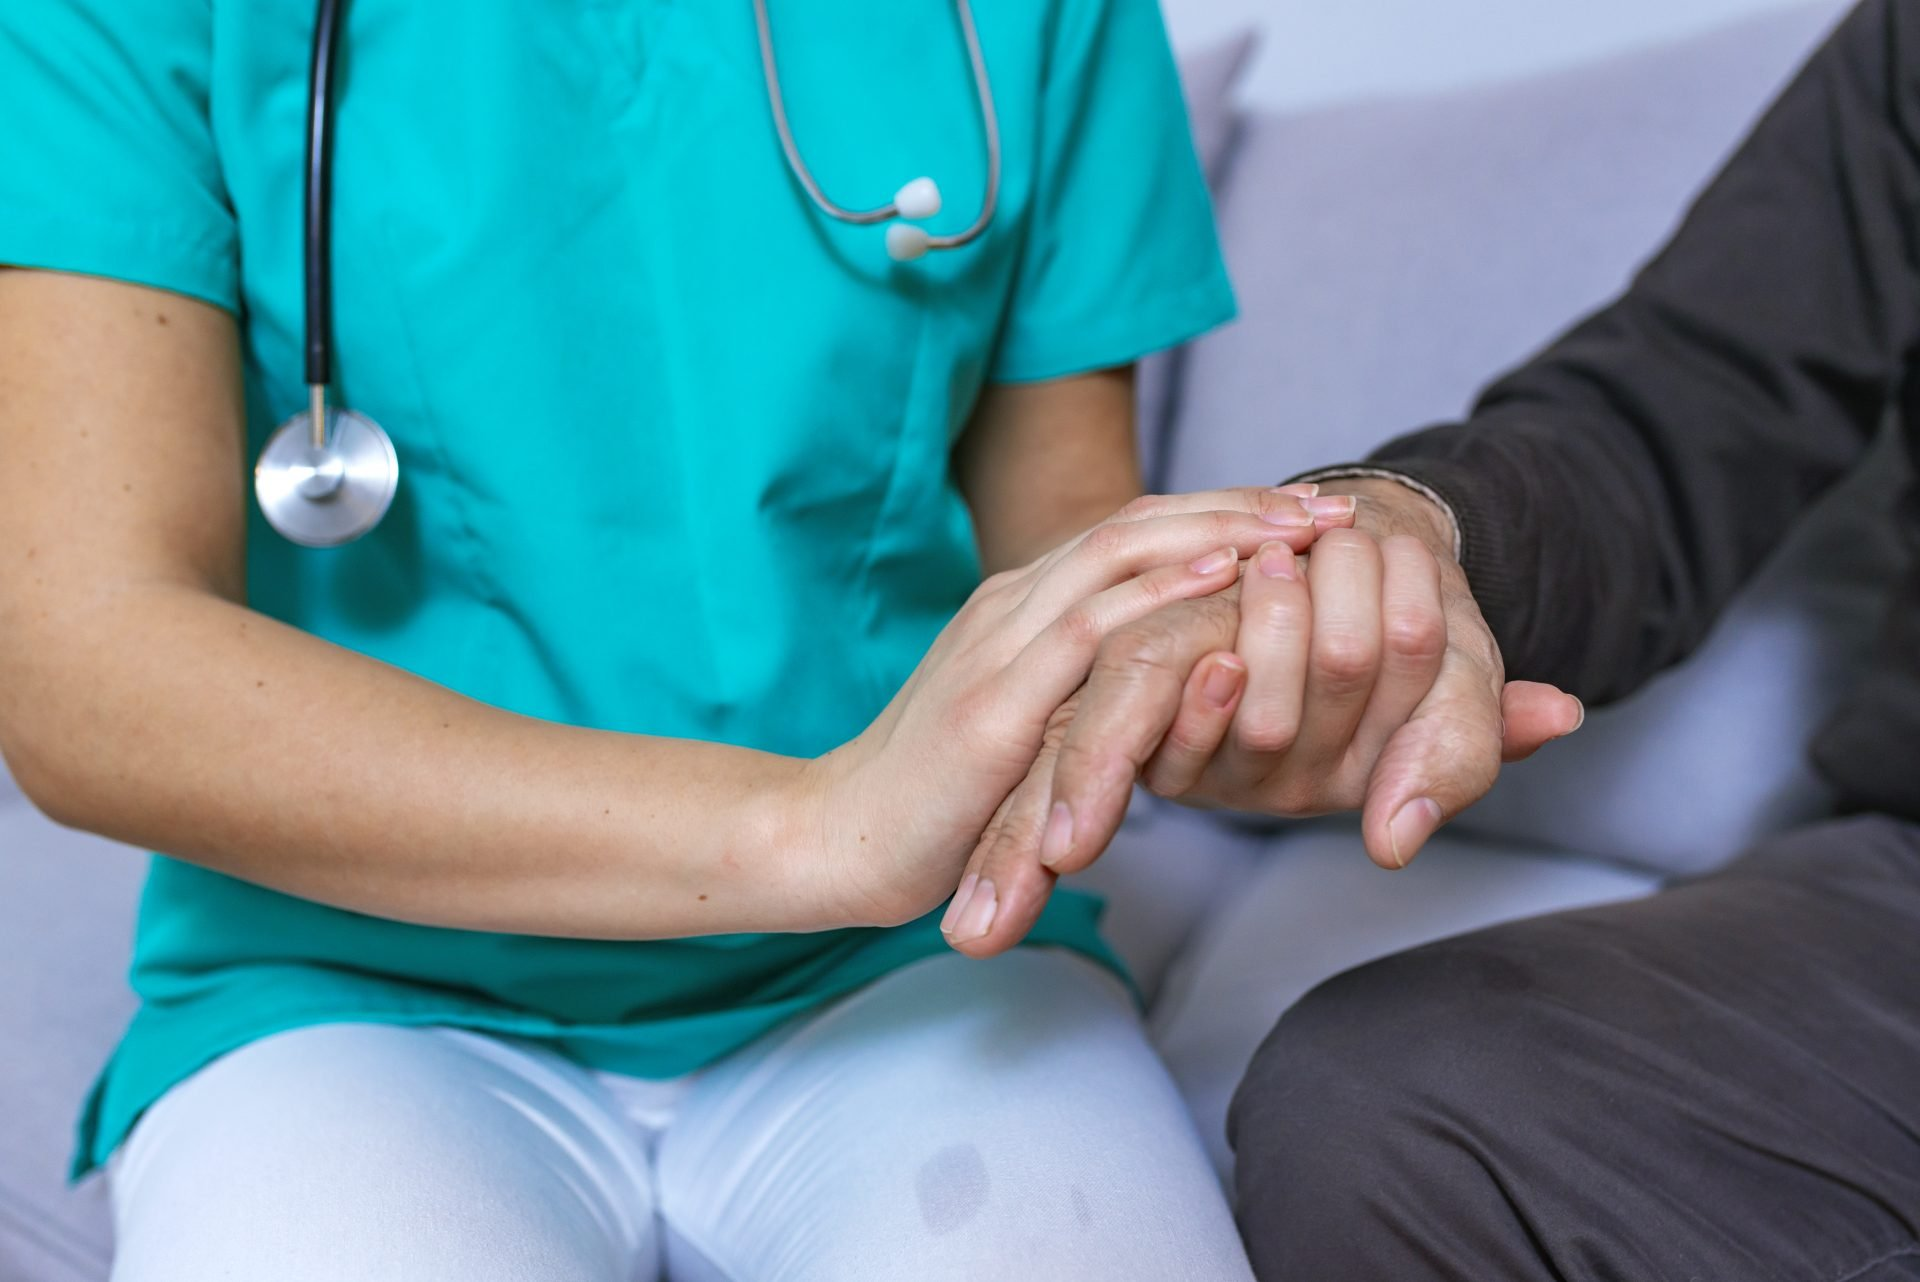 Medical Employee Caring for Patient